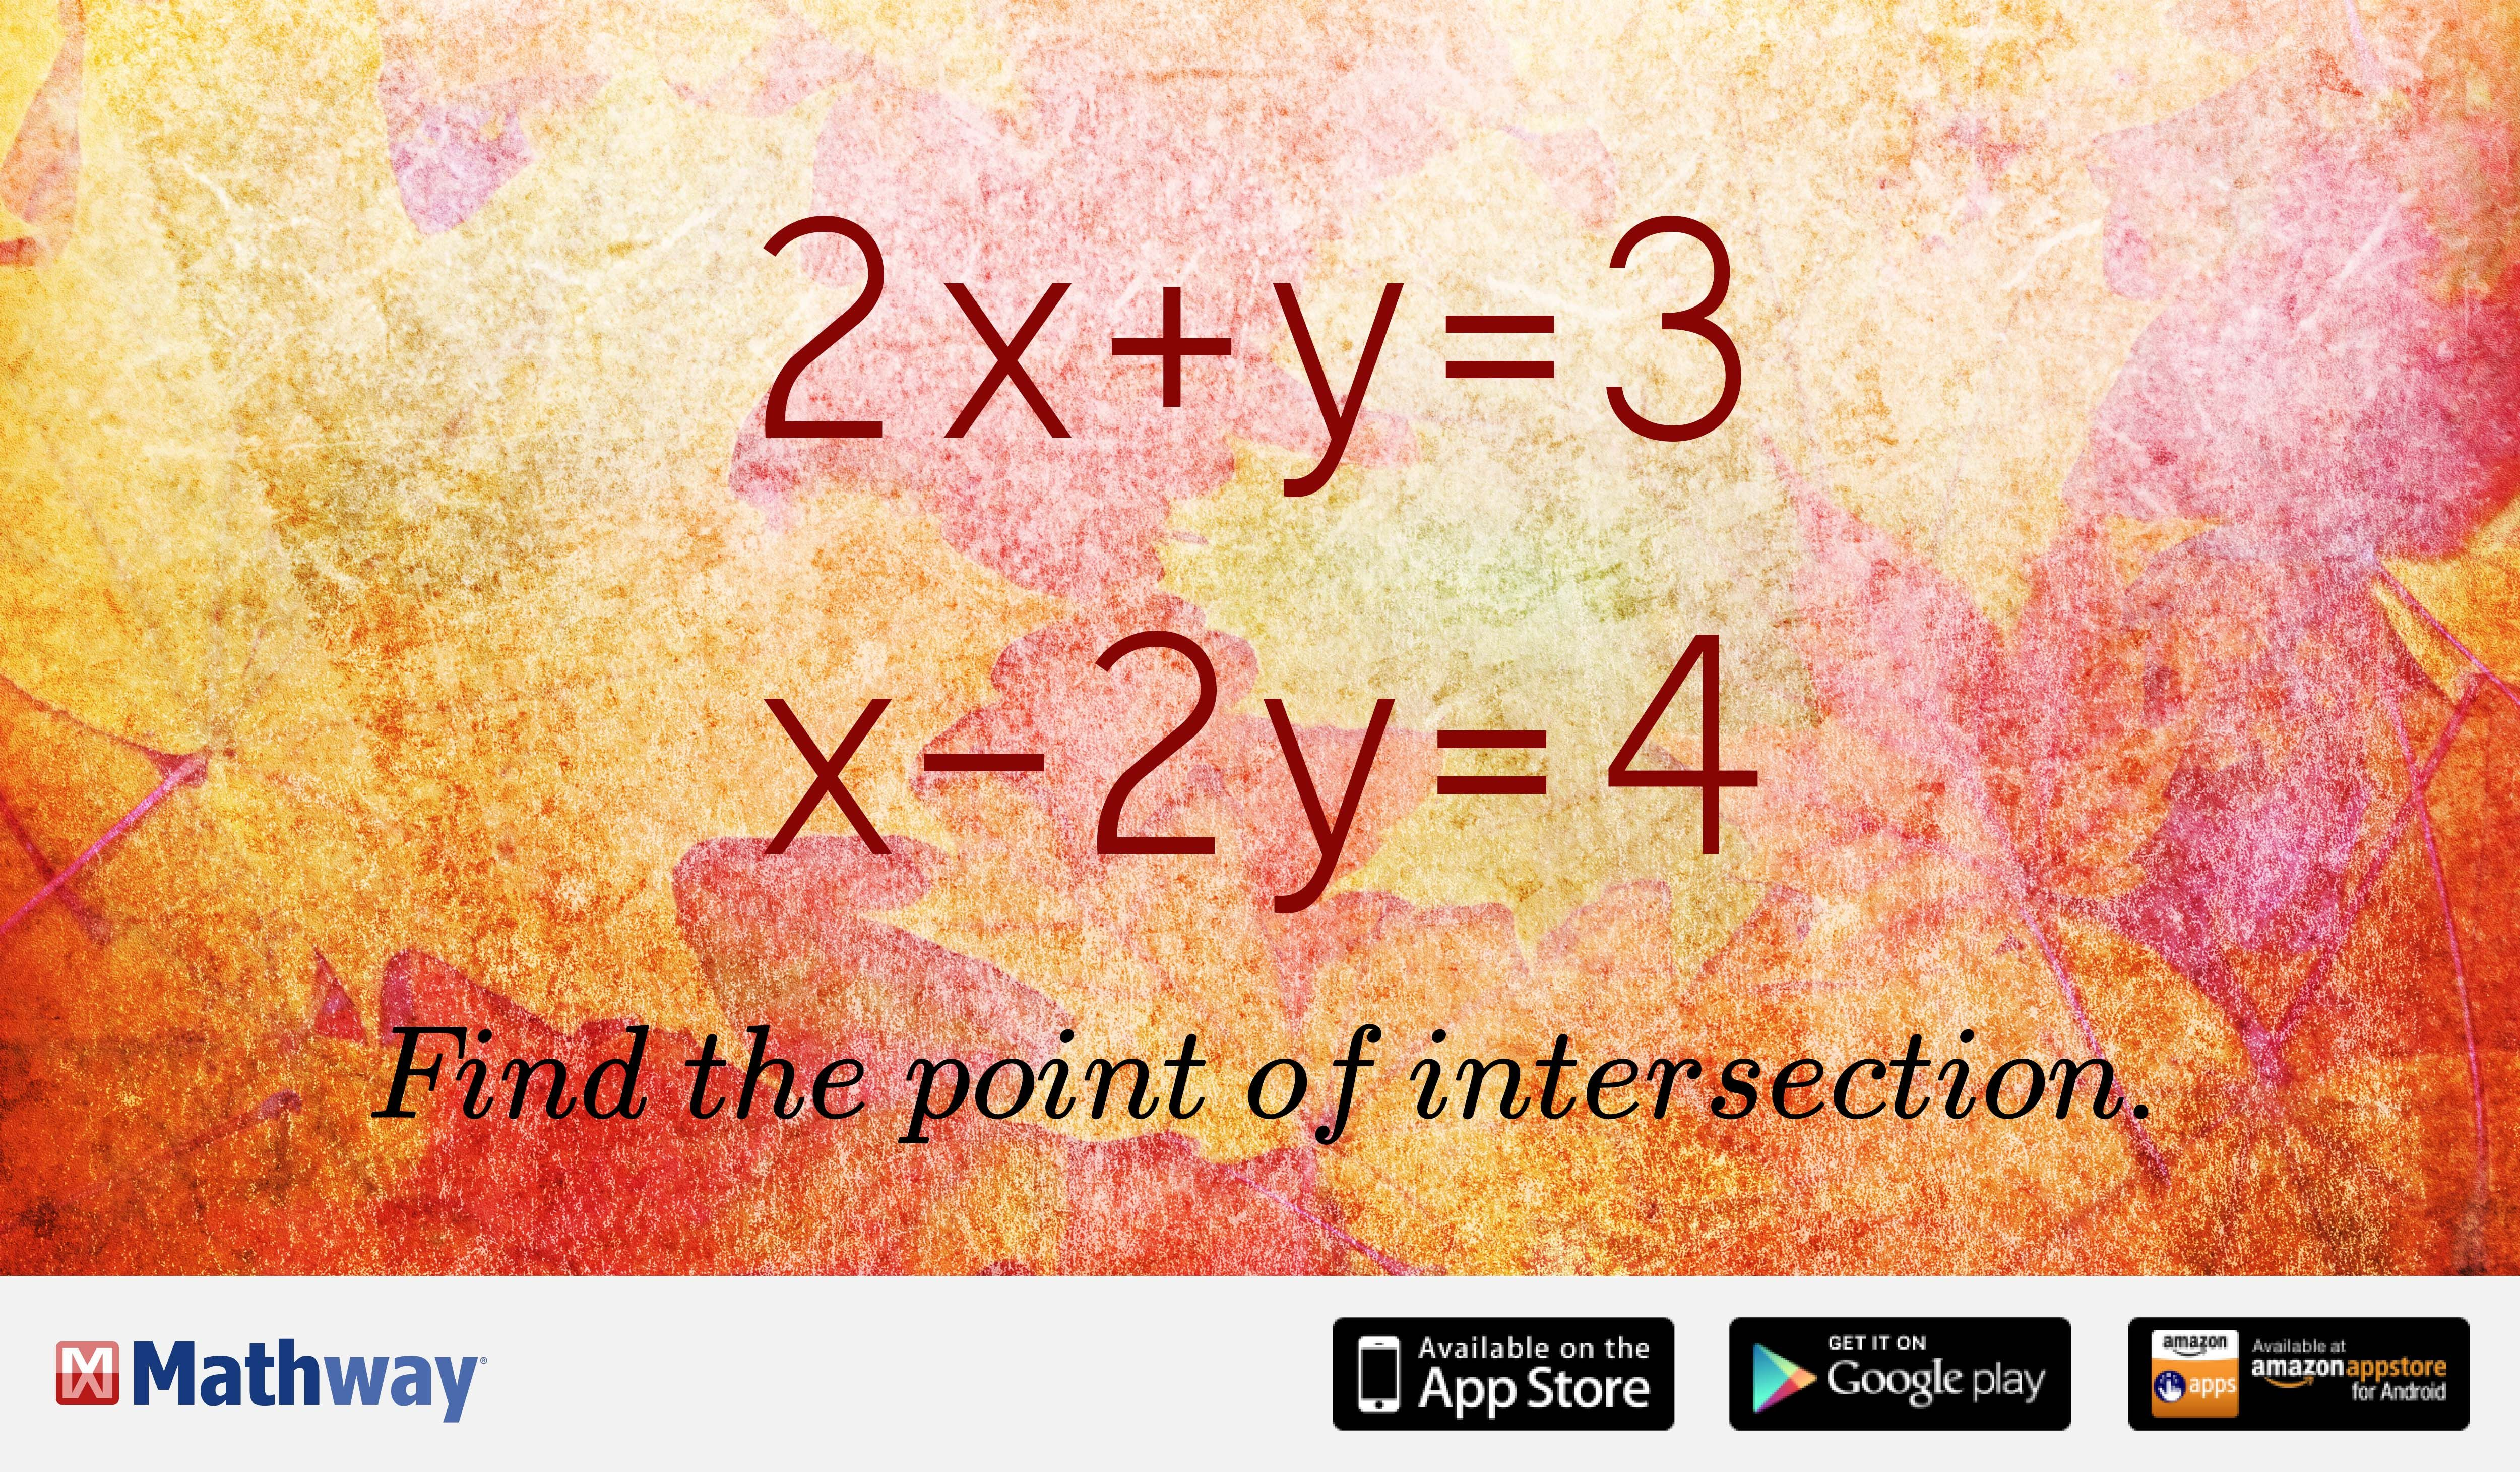 Try our practice problem and find the point of intersection ... Mathway Ed on